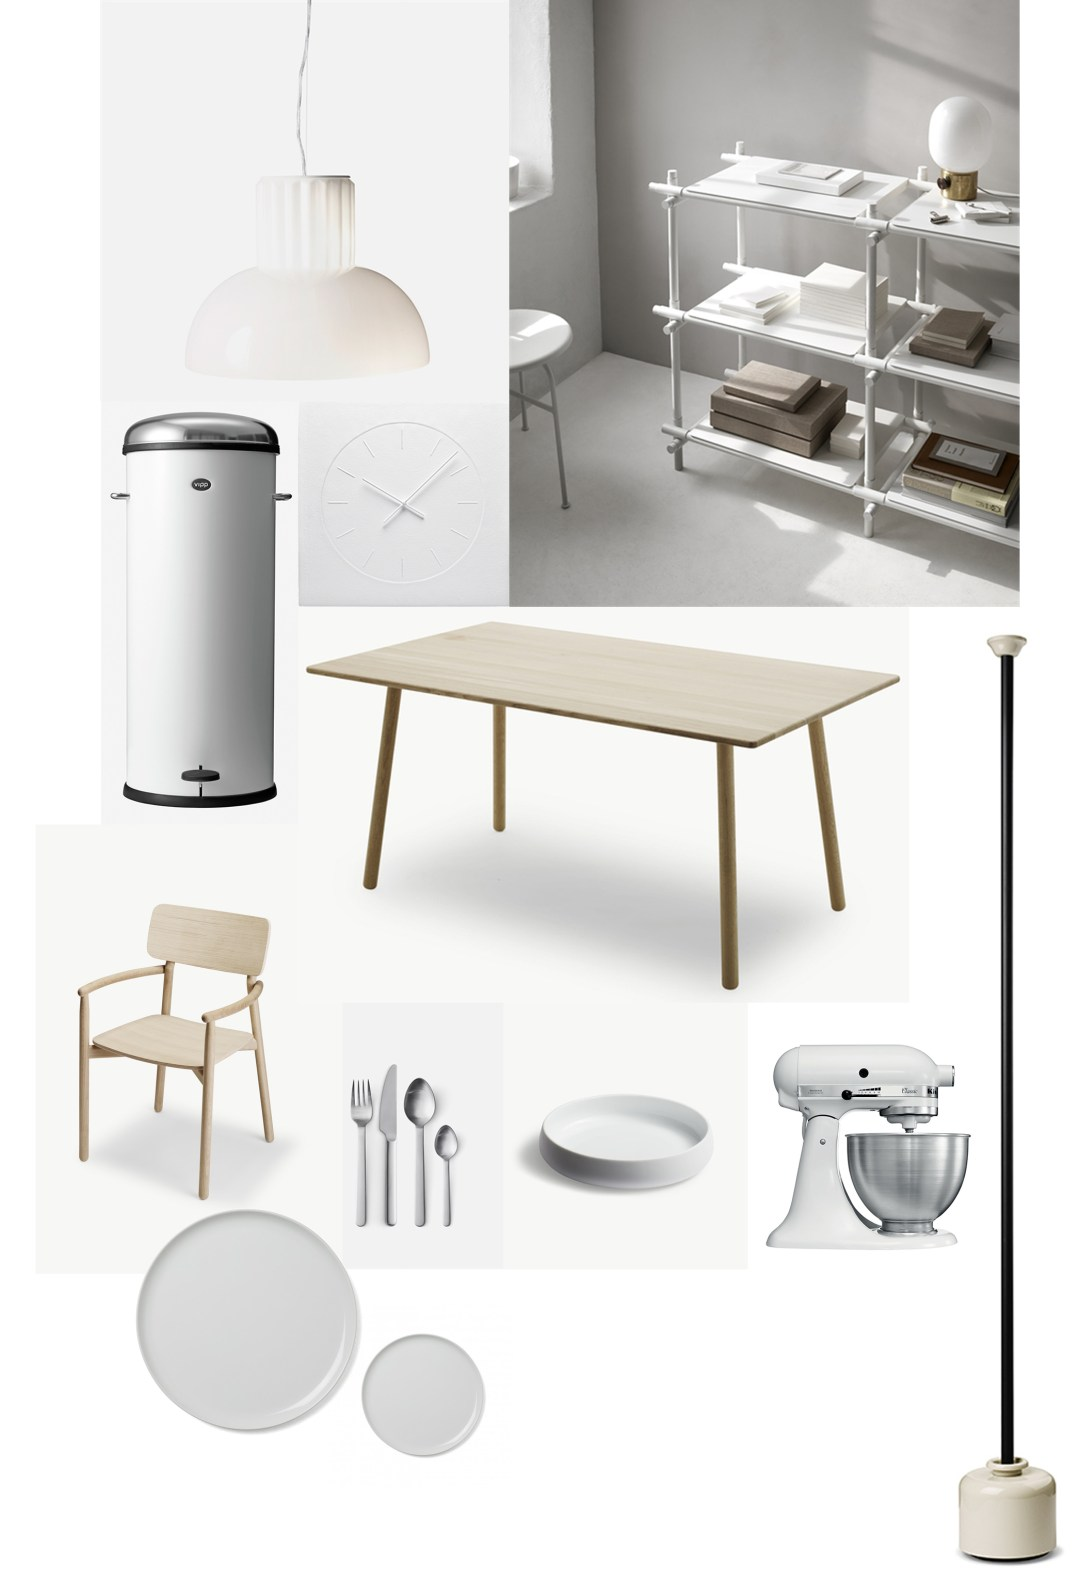 Scandinavian minimalist kitchen/diner inspiration